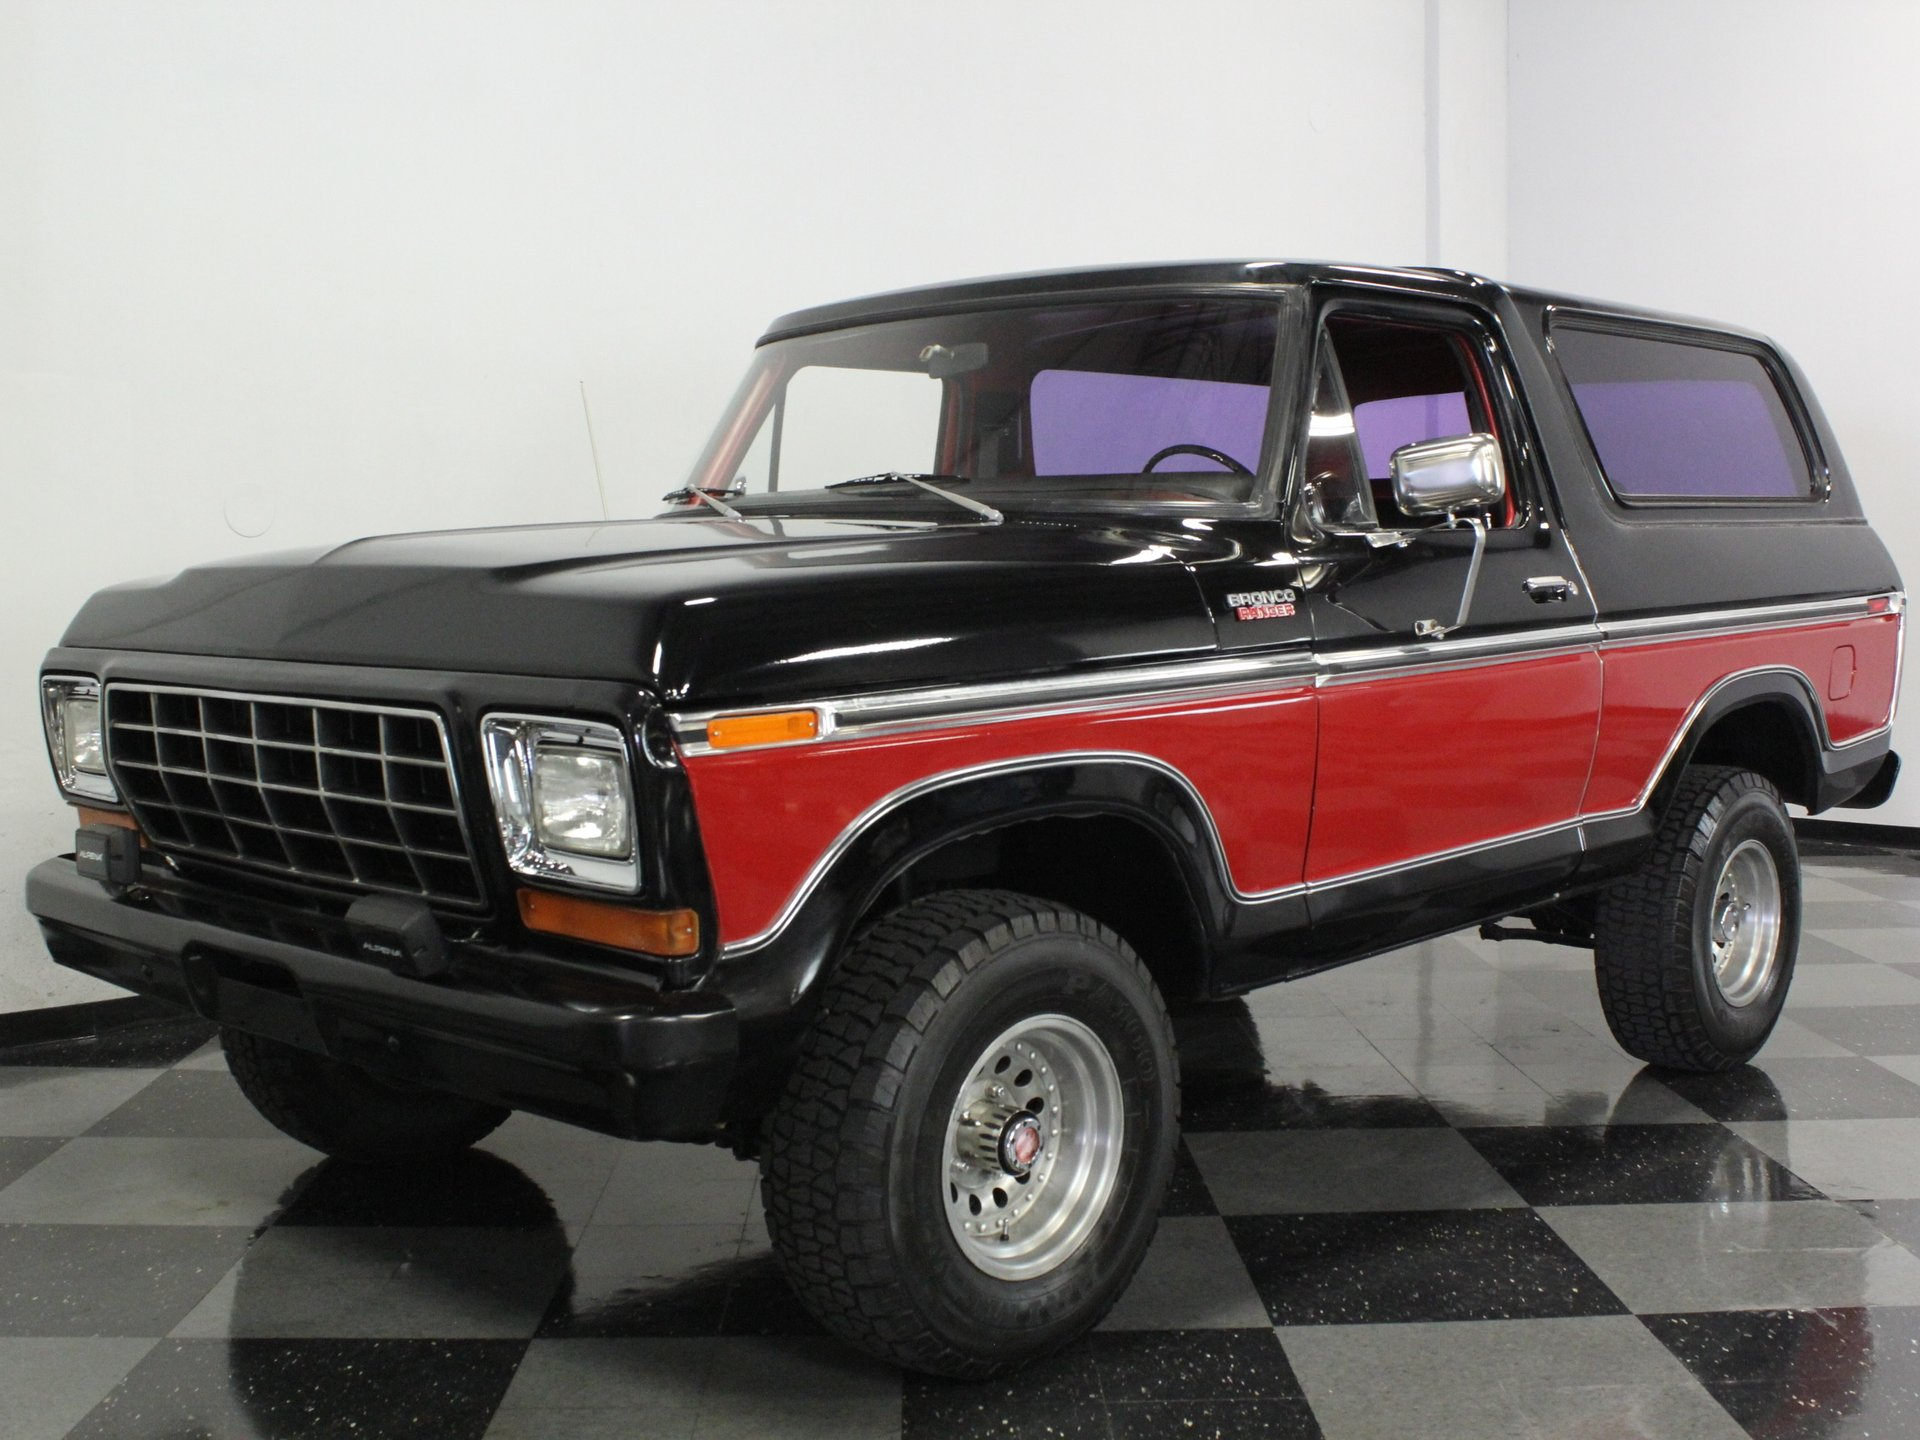 1978 Ford Bronco Classic Cars For Sale Streetside Classics The Nation S 1 Consignment Dealer